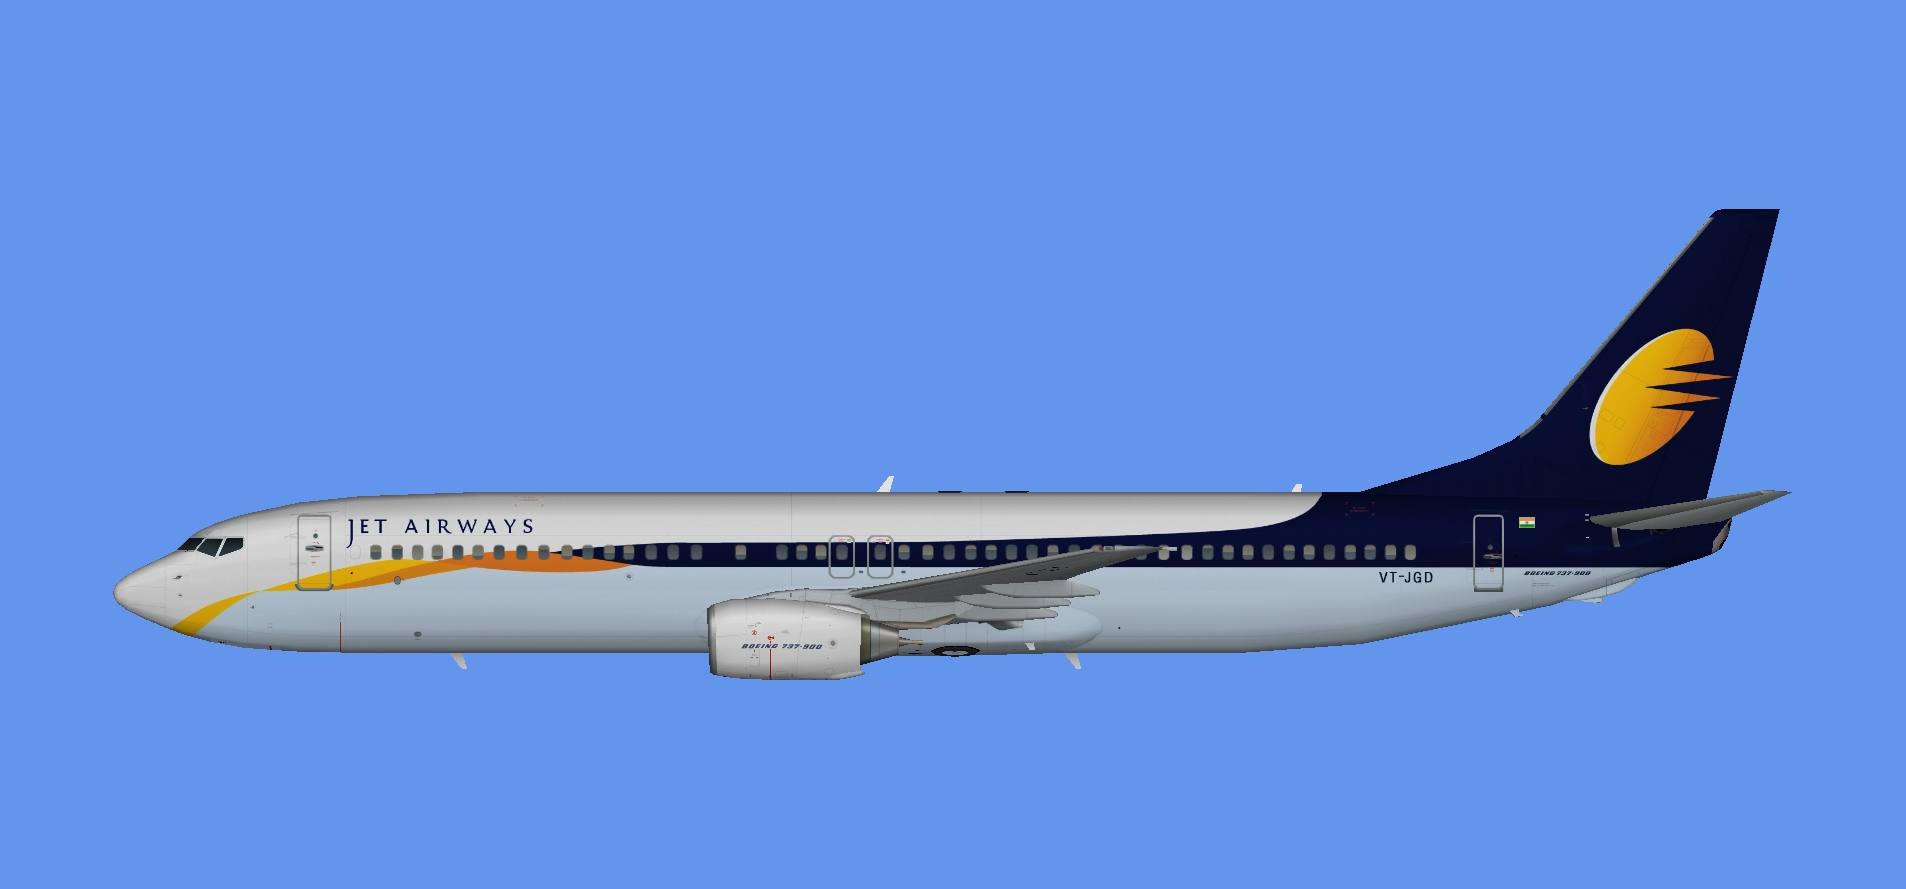 Jet Airways Boeing 737-900